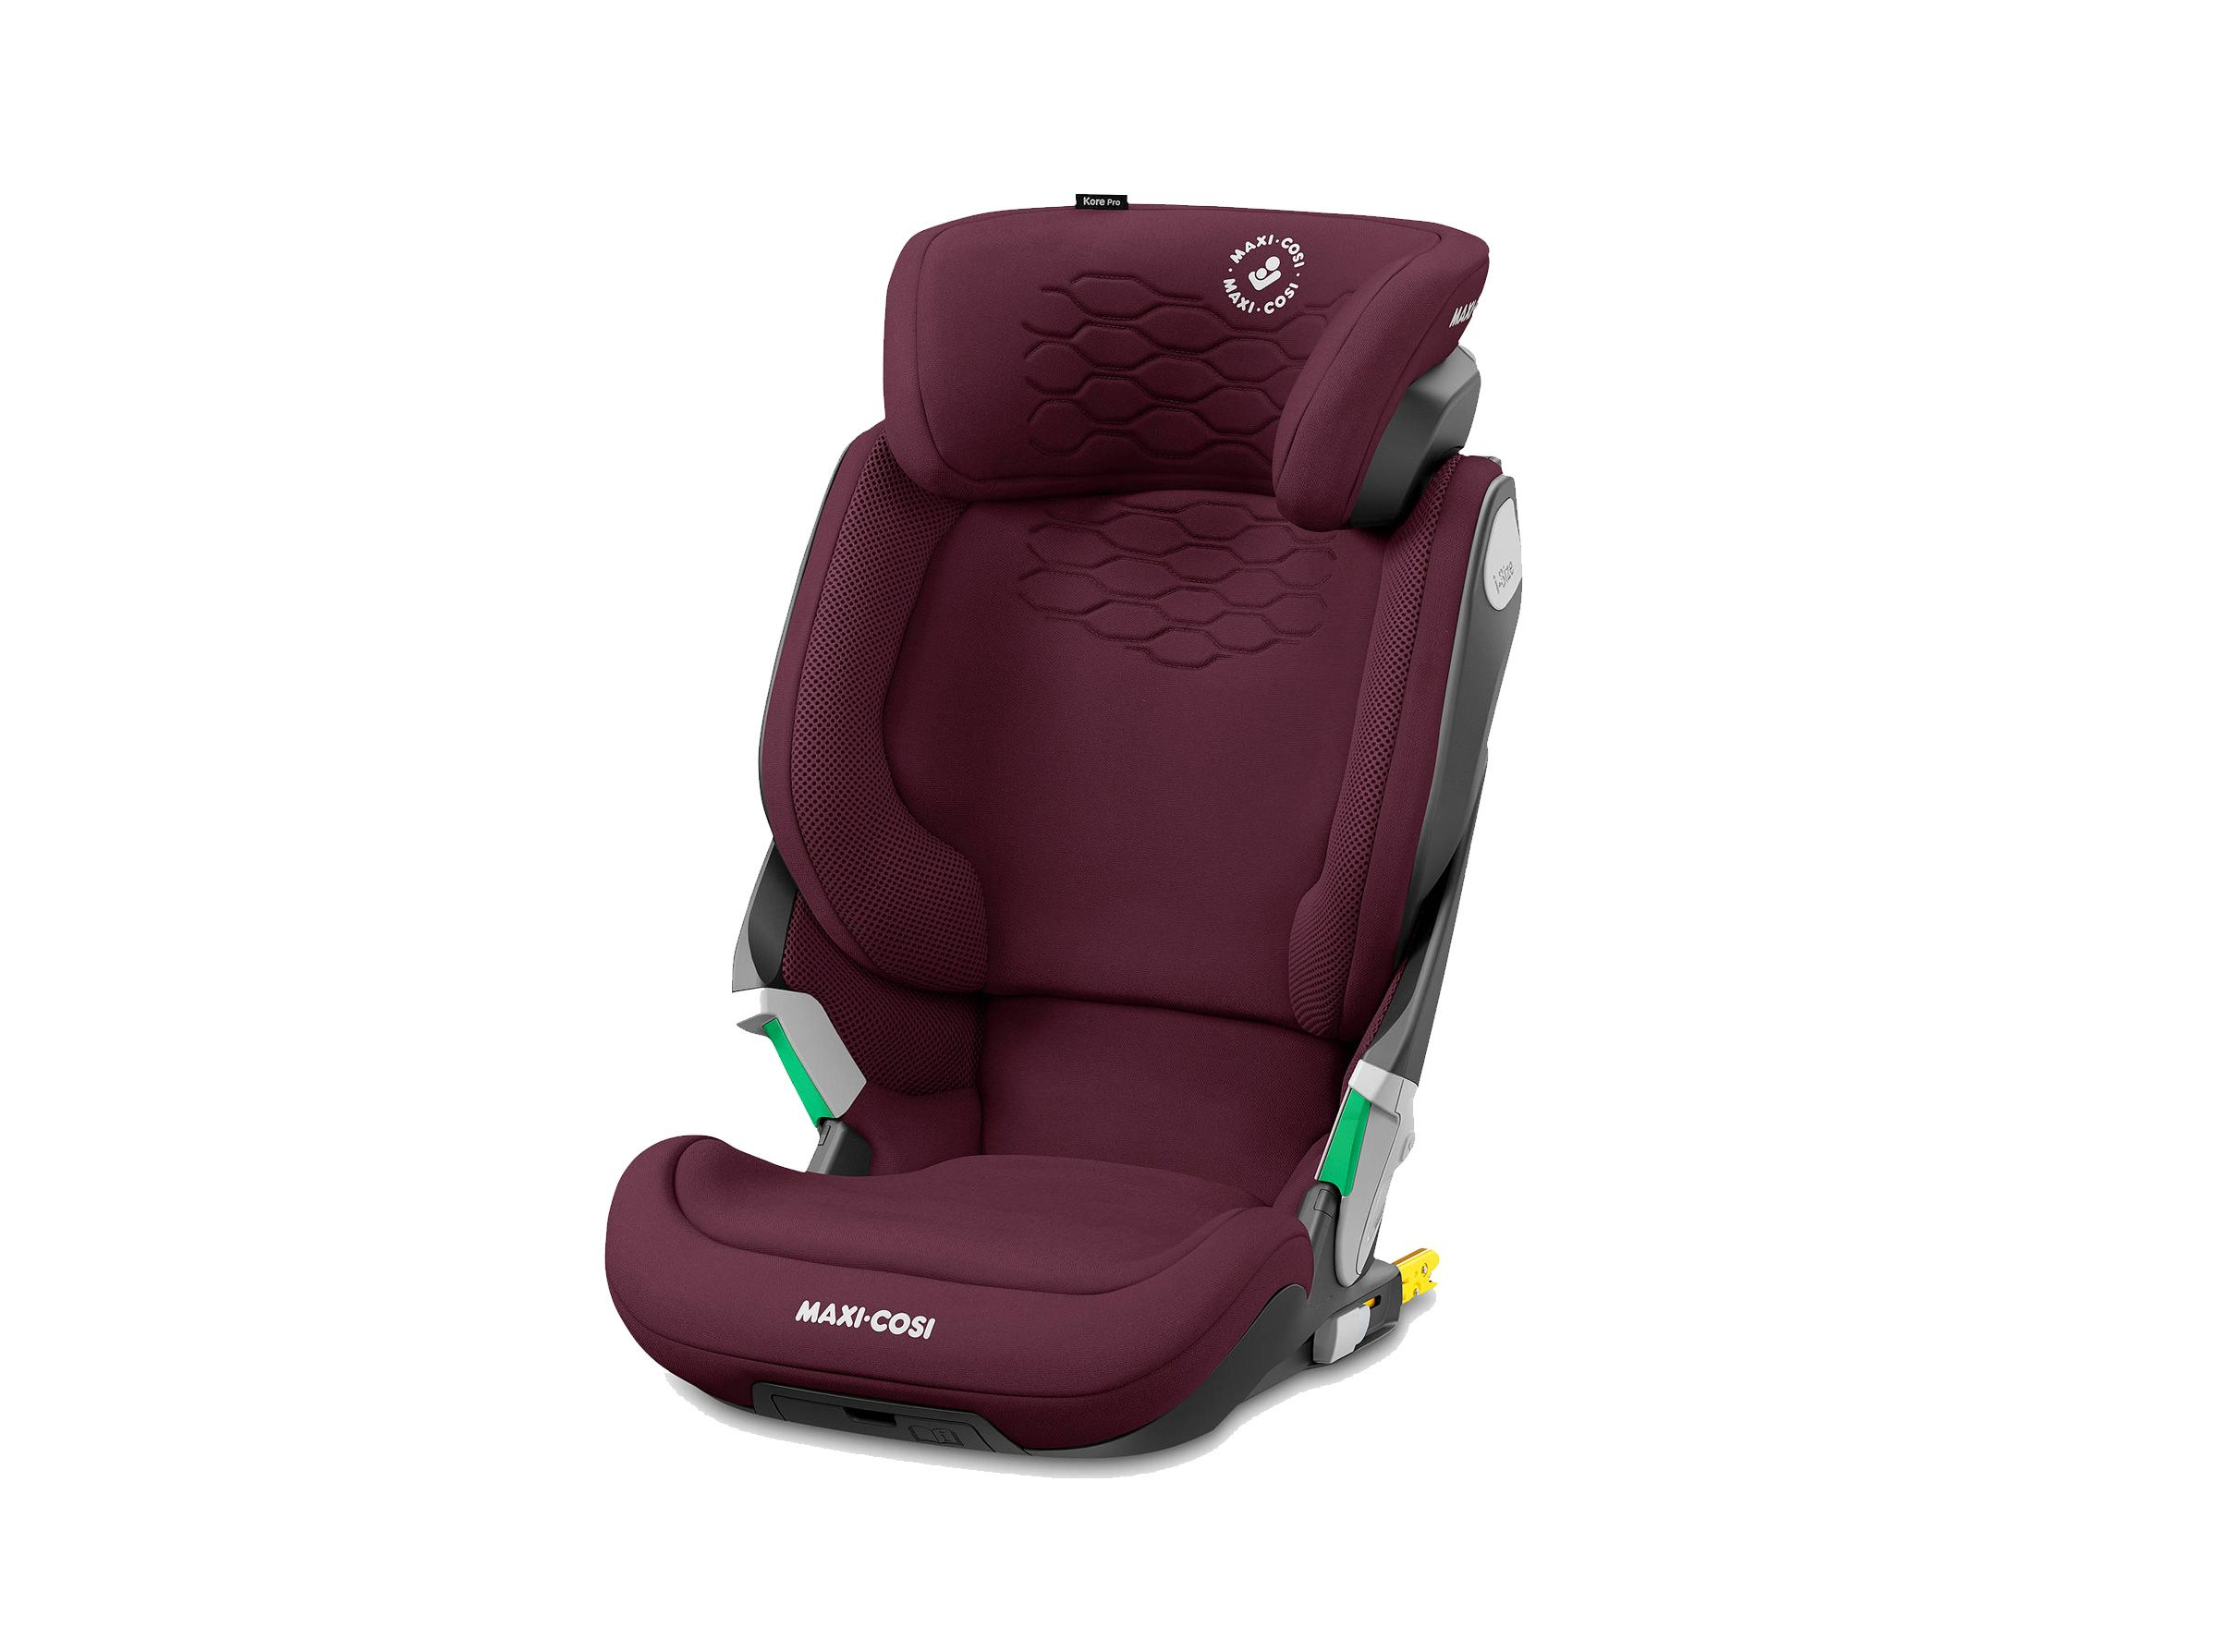 A group 2/3 car seat